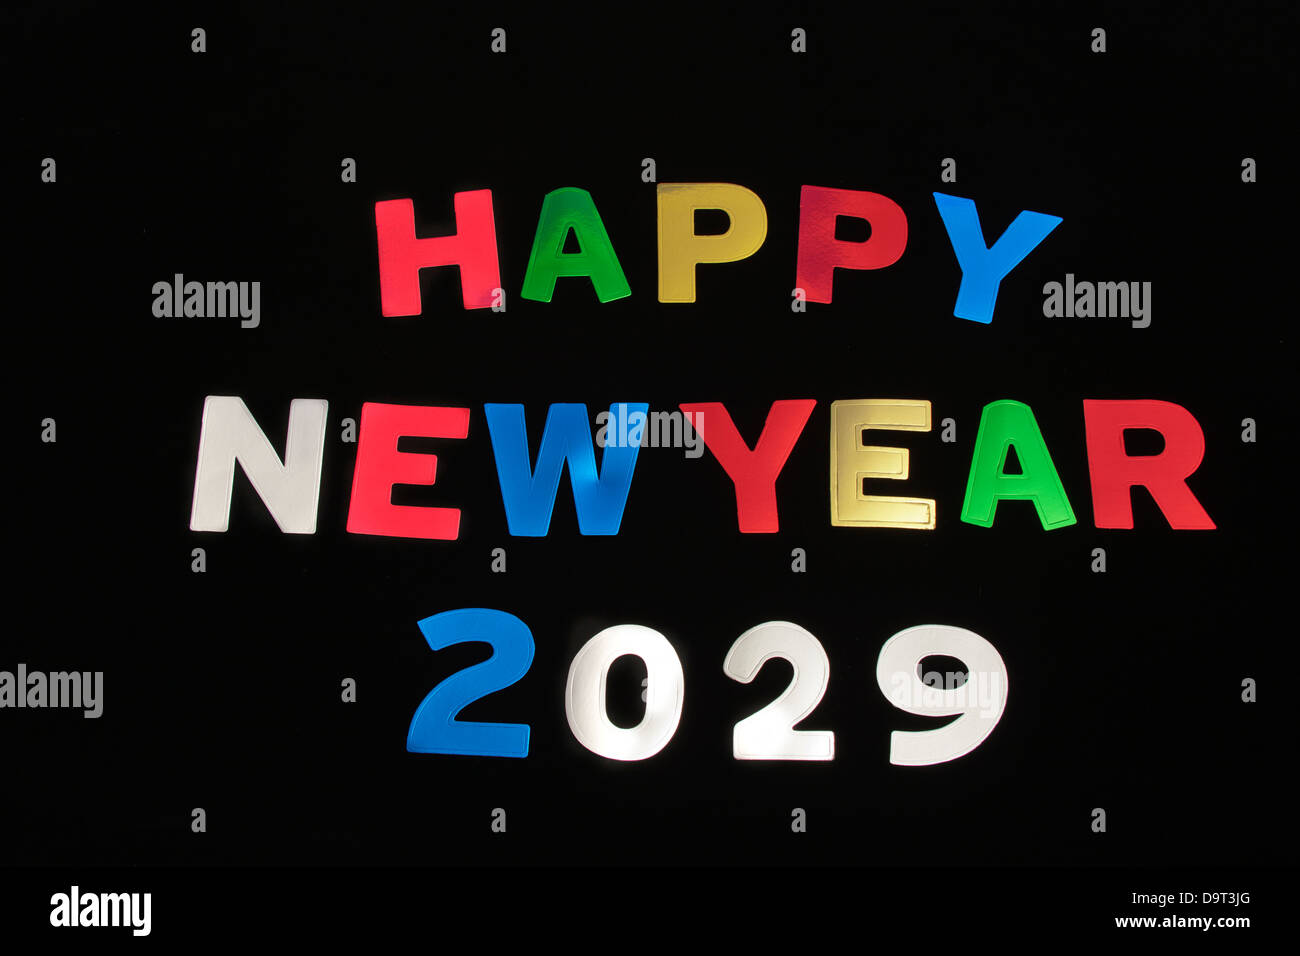 HAPPY NEW YEAR 2029Stock Photo